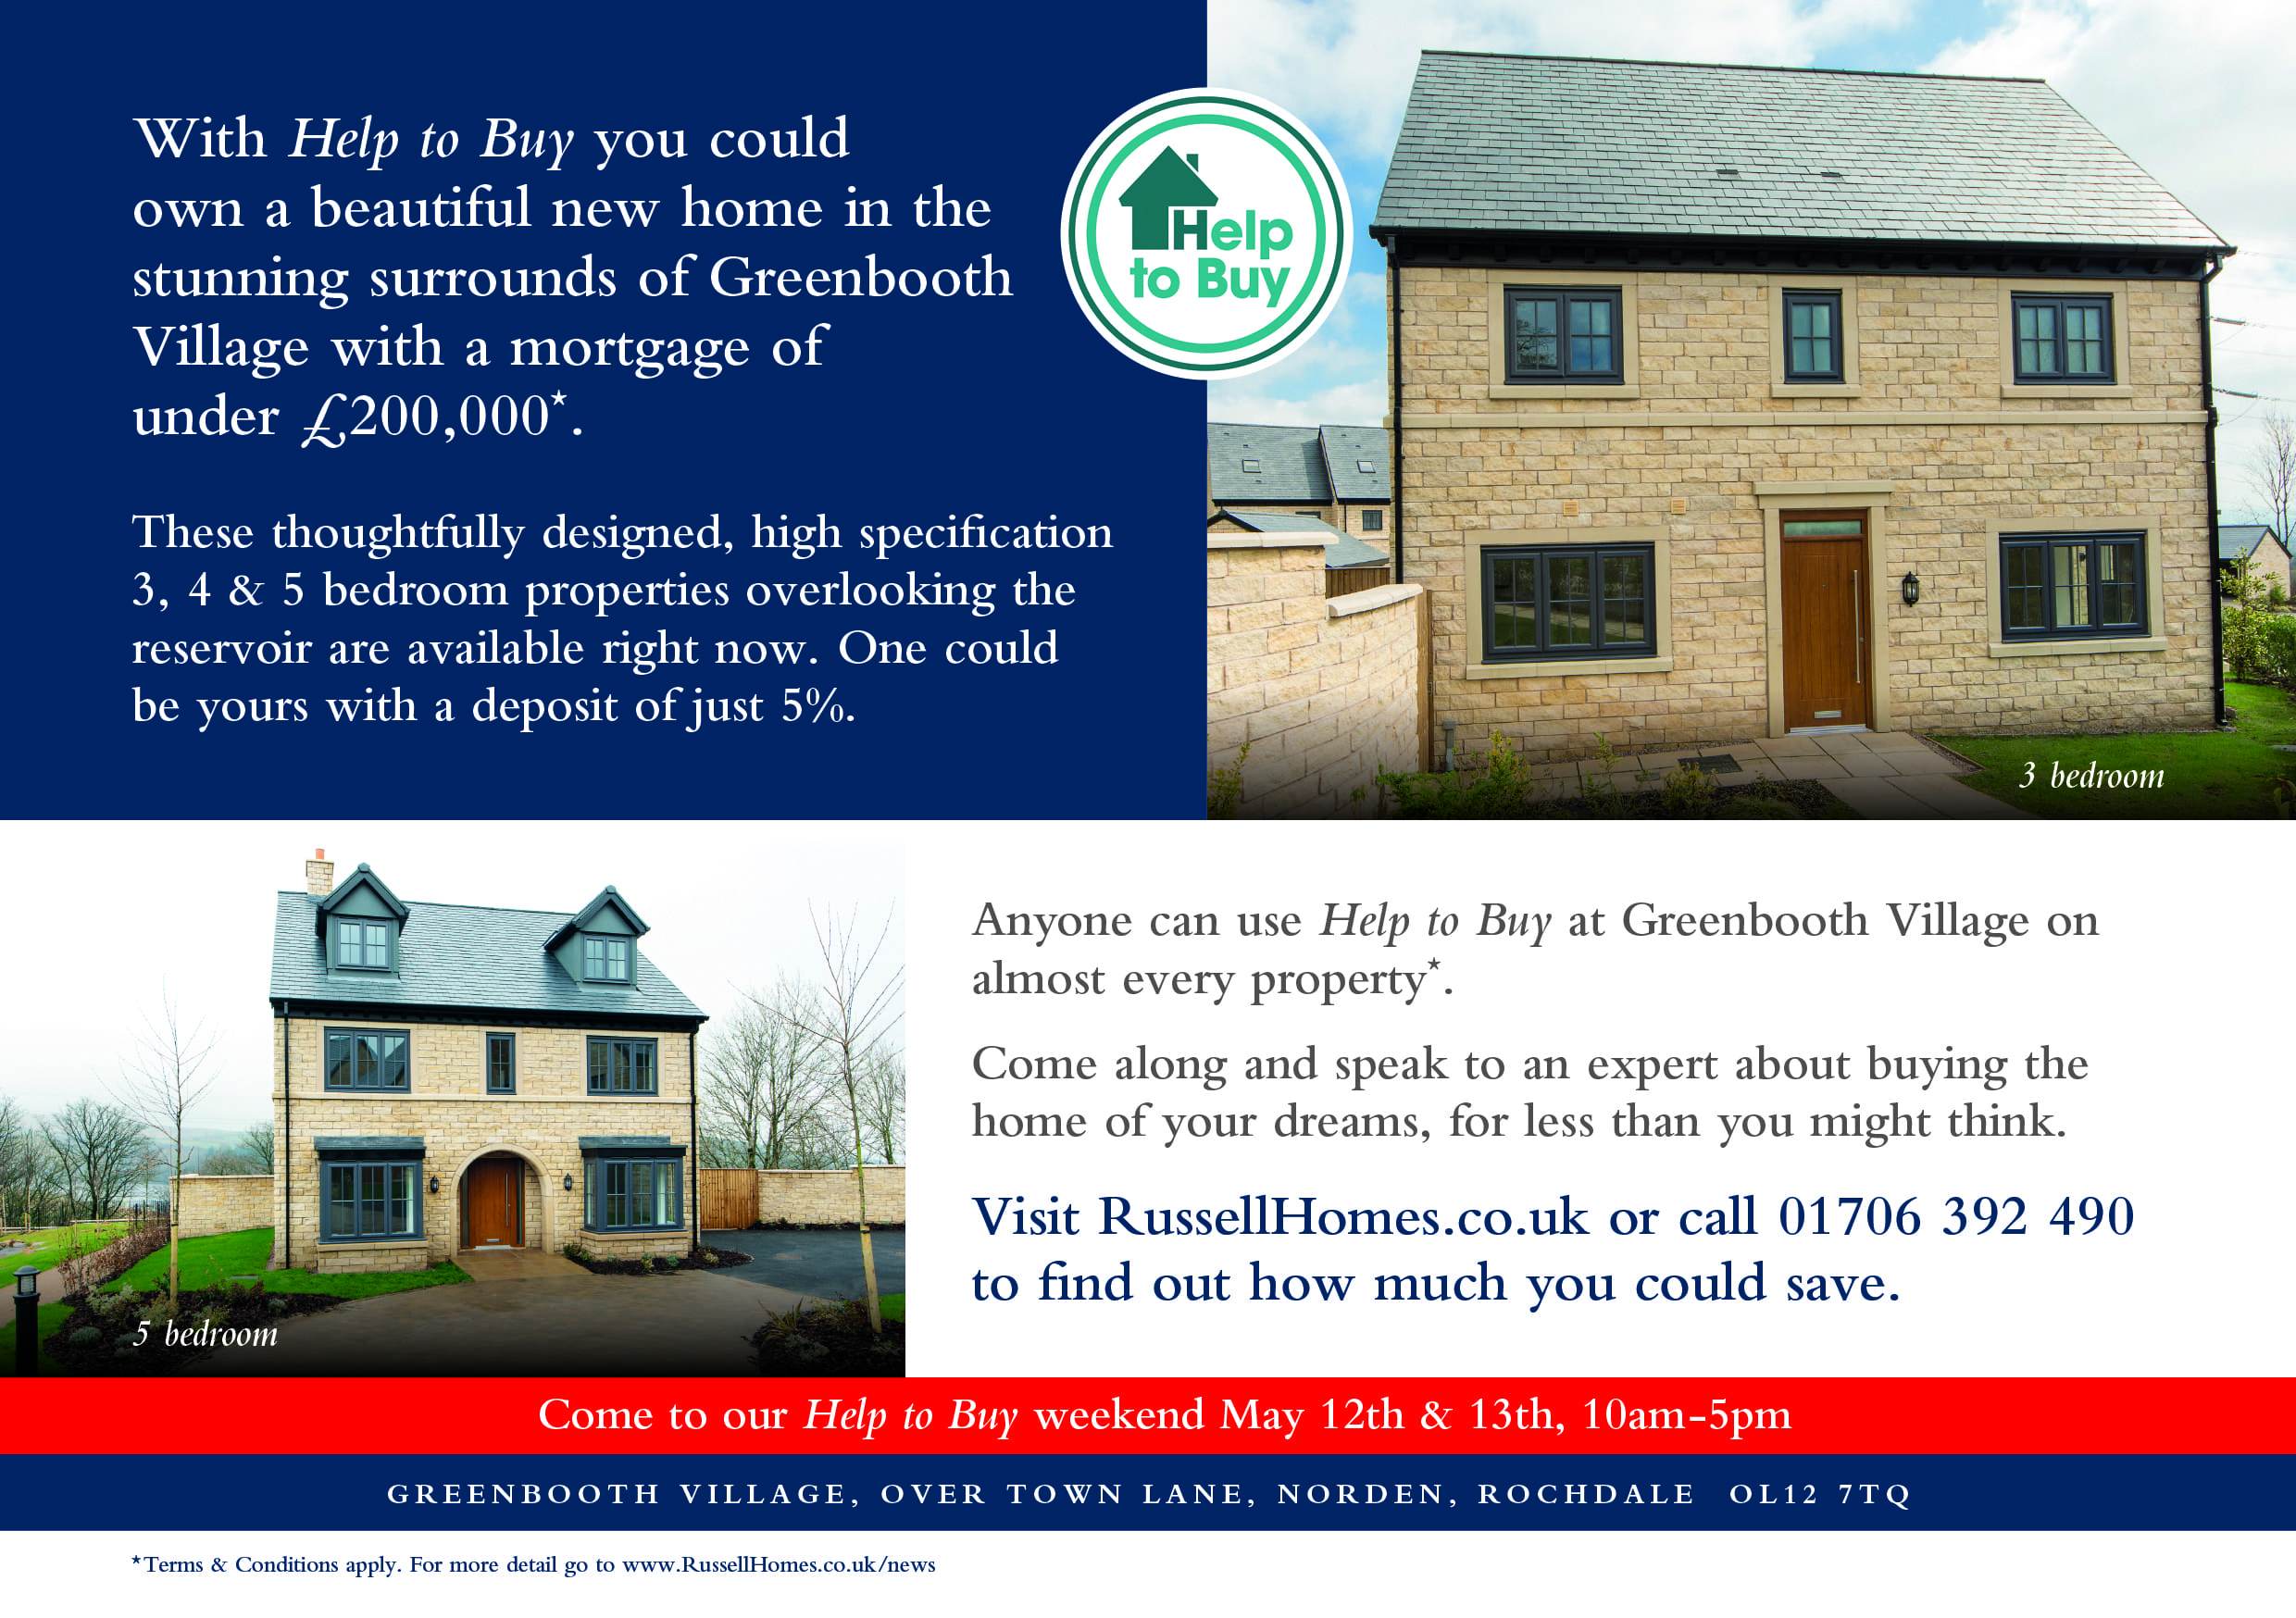 Russell Homes Greenbooth Village Help to Buy weekend 2